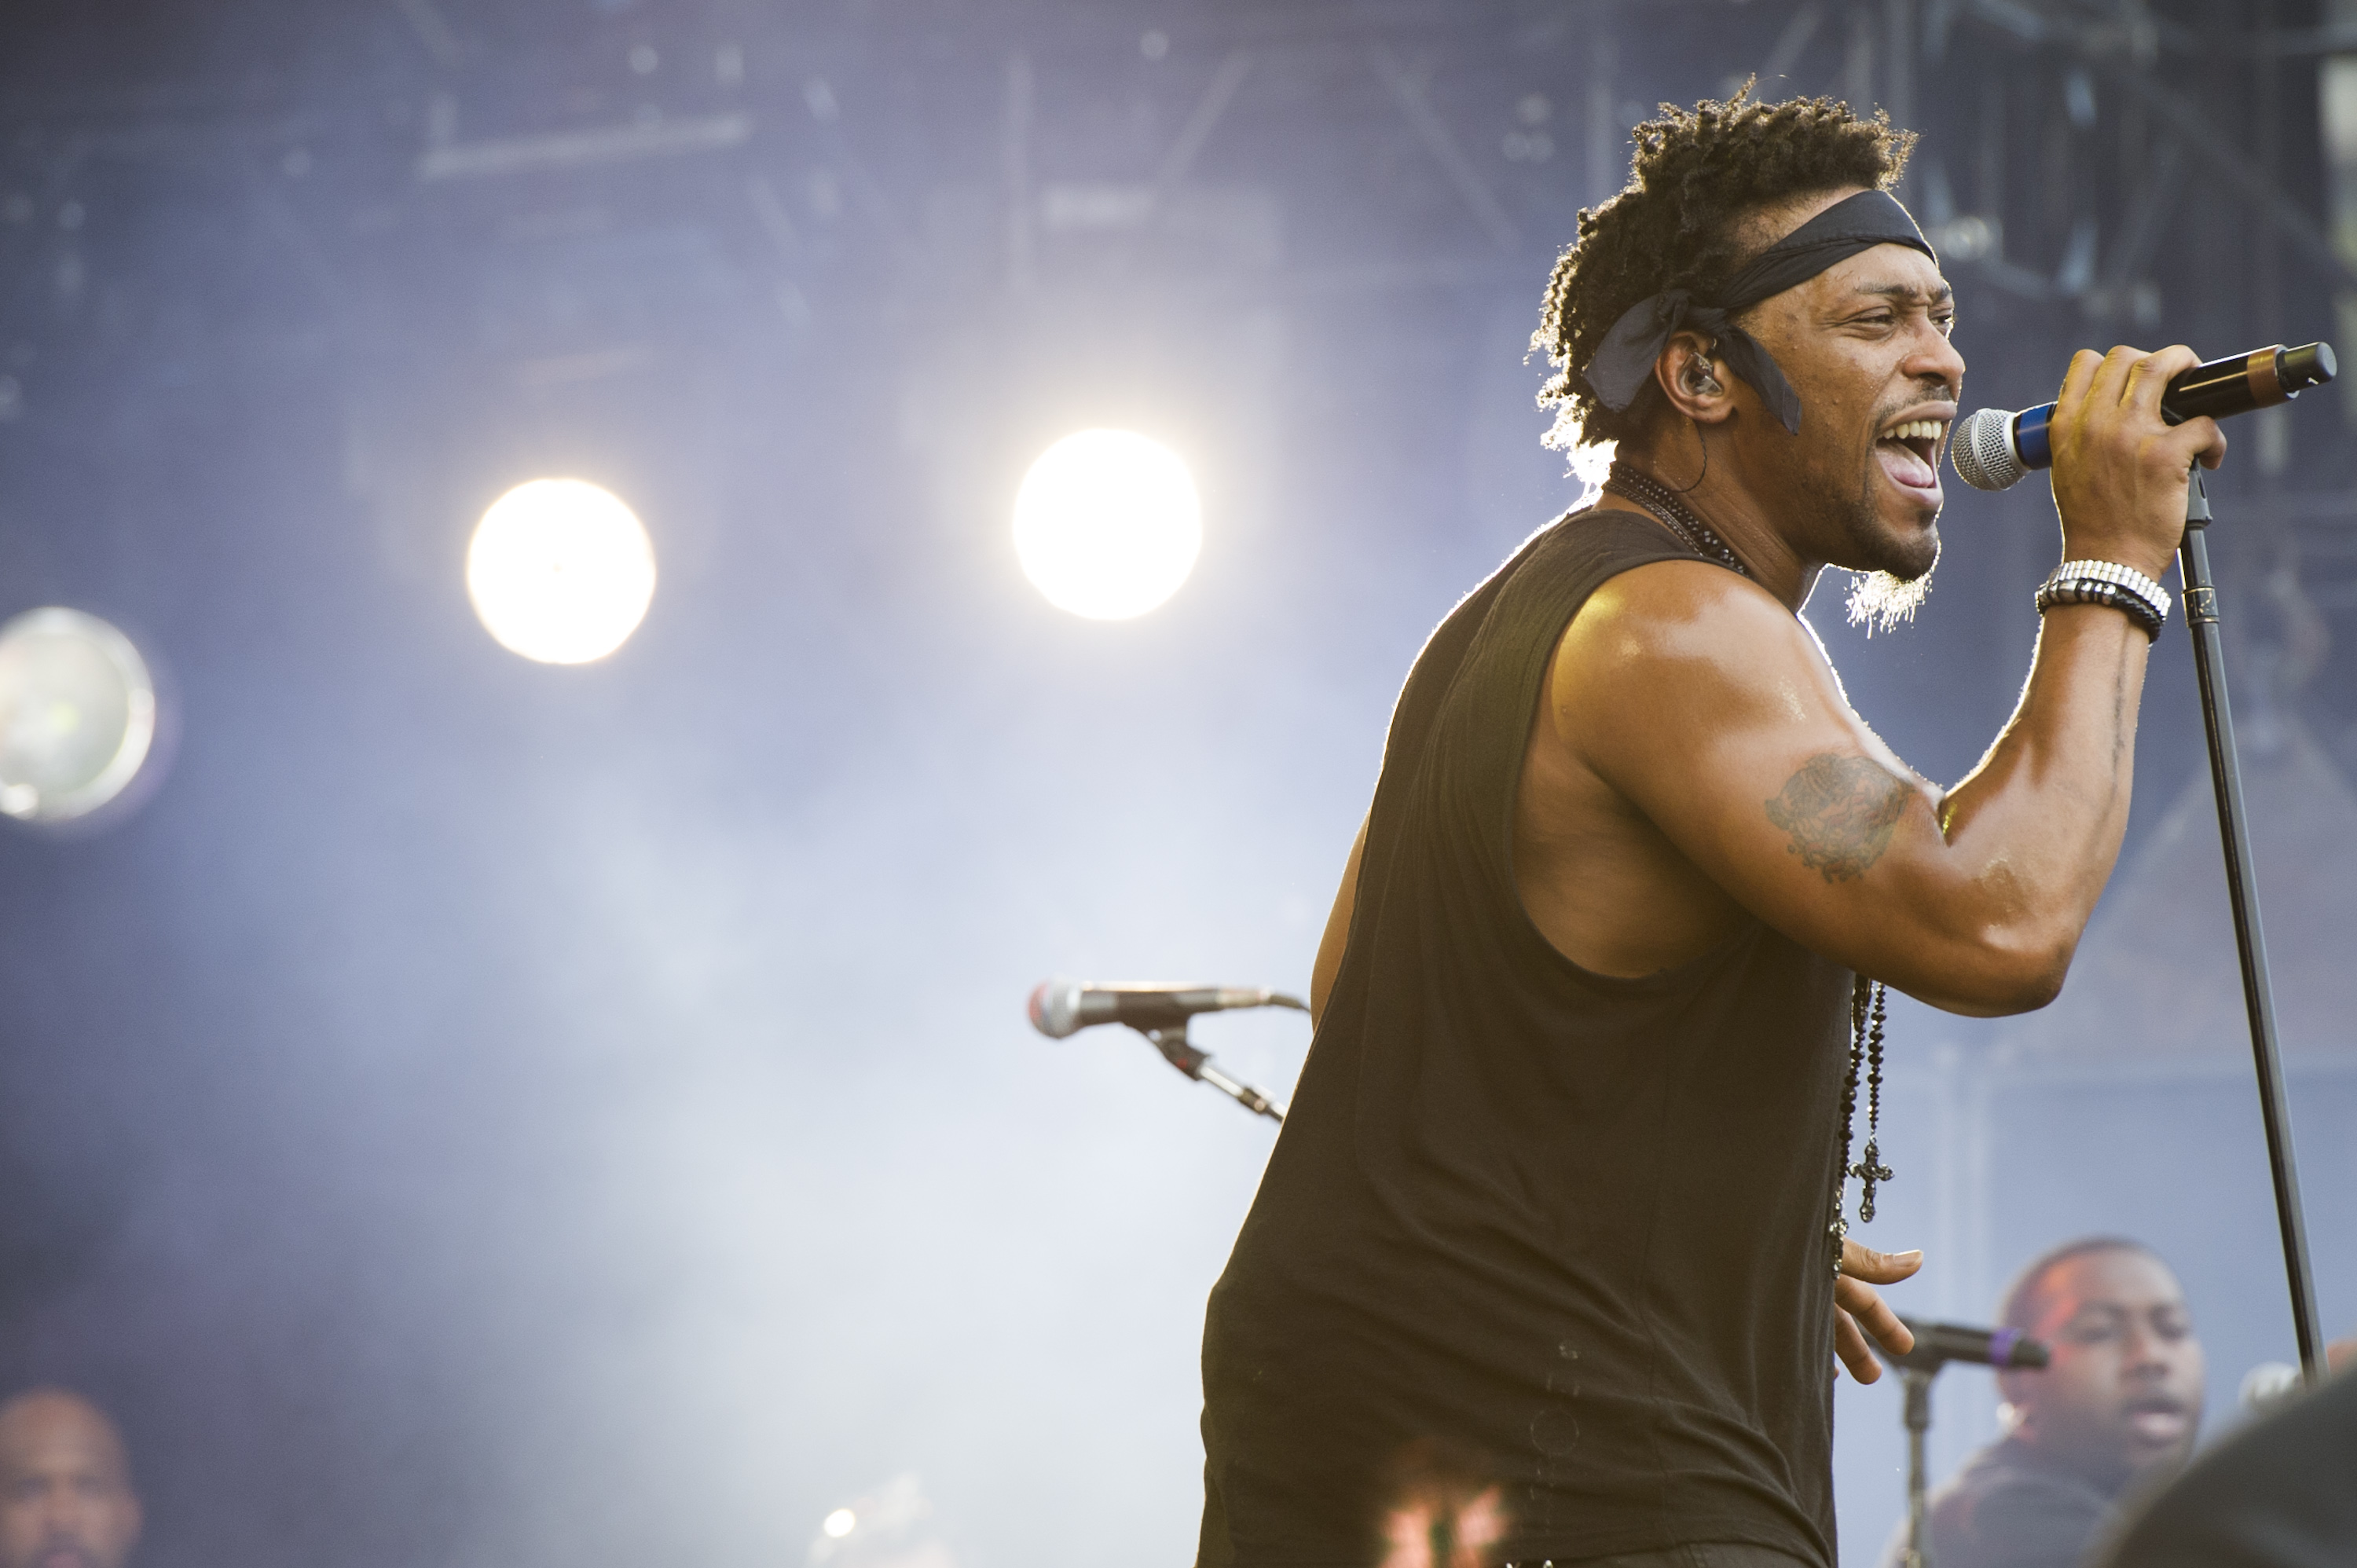 D'Angelo performing in 2012.